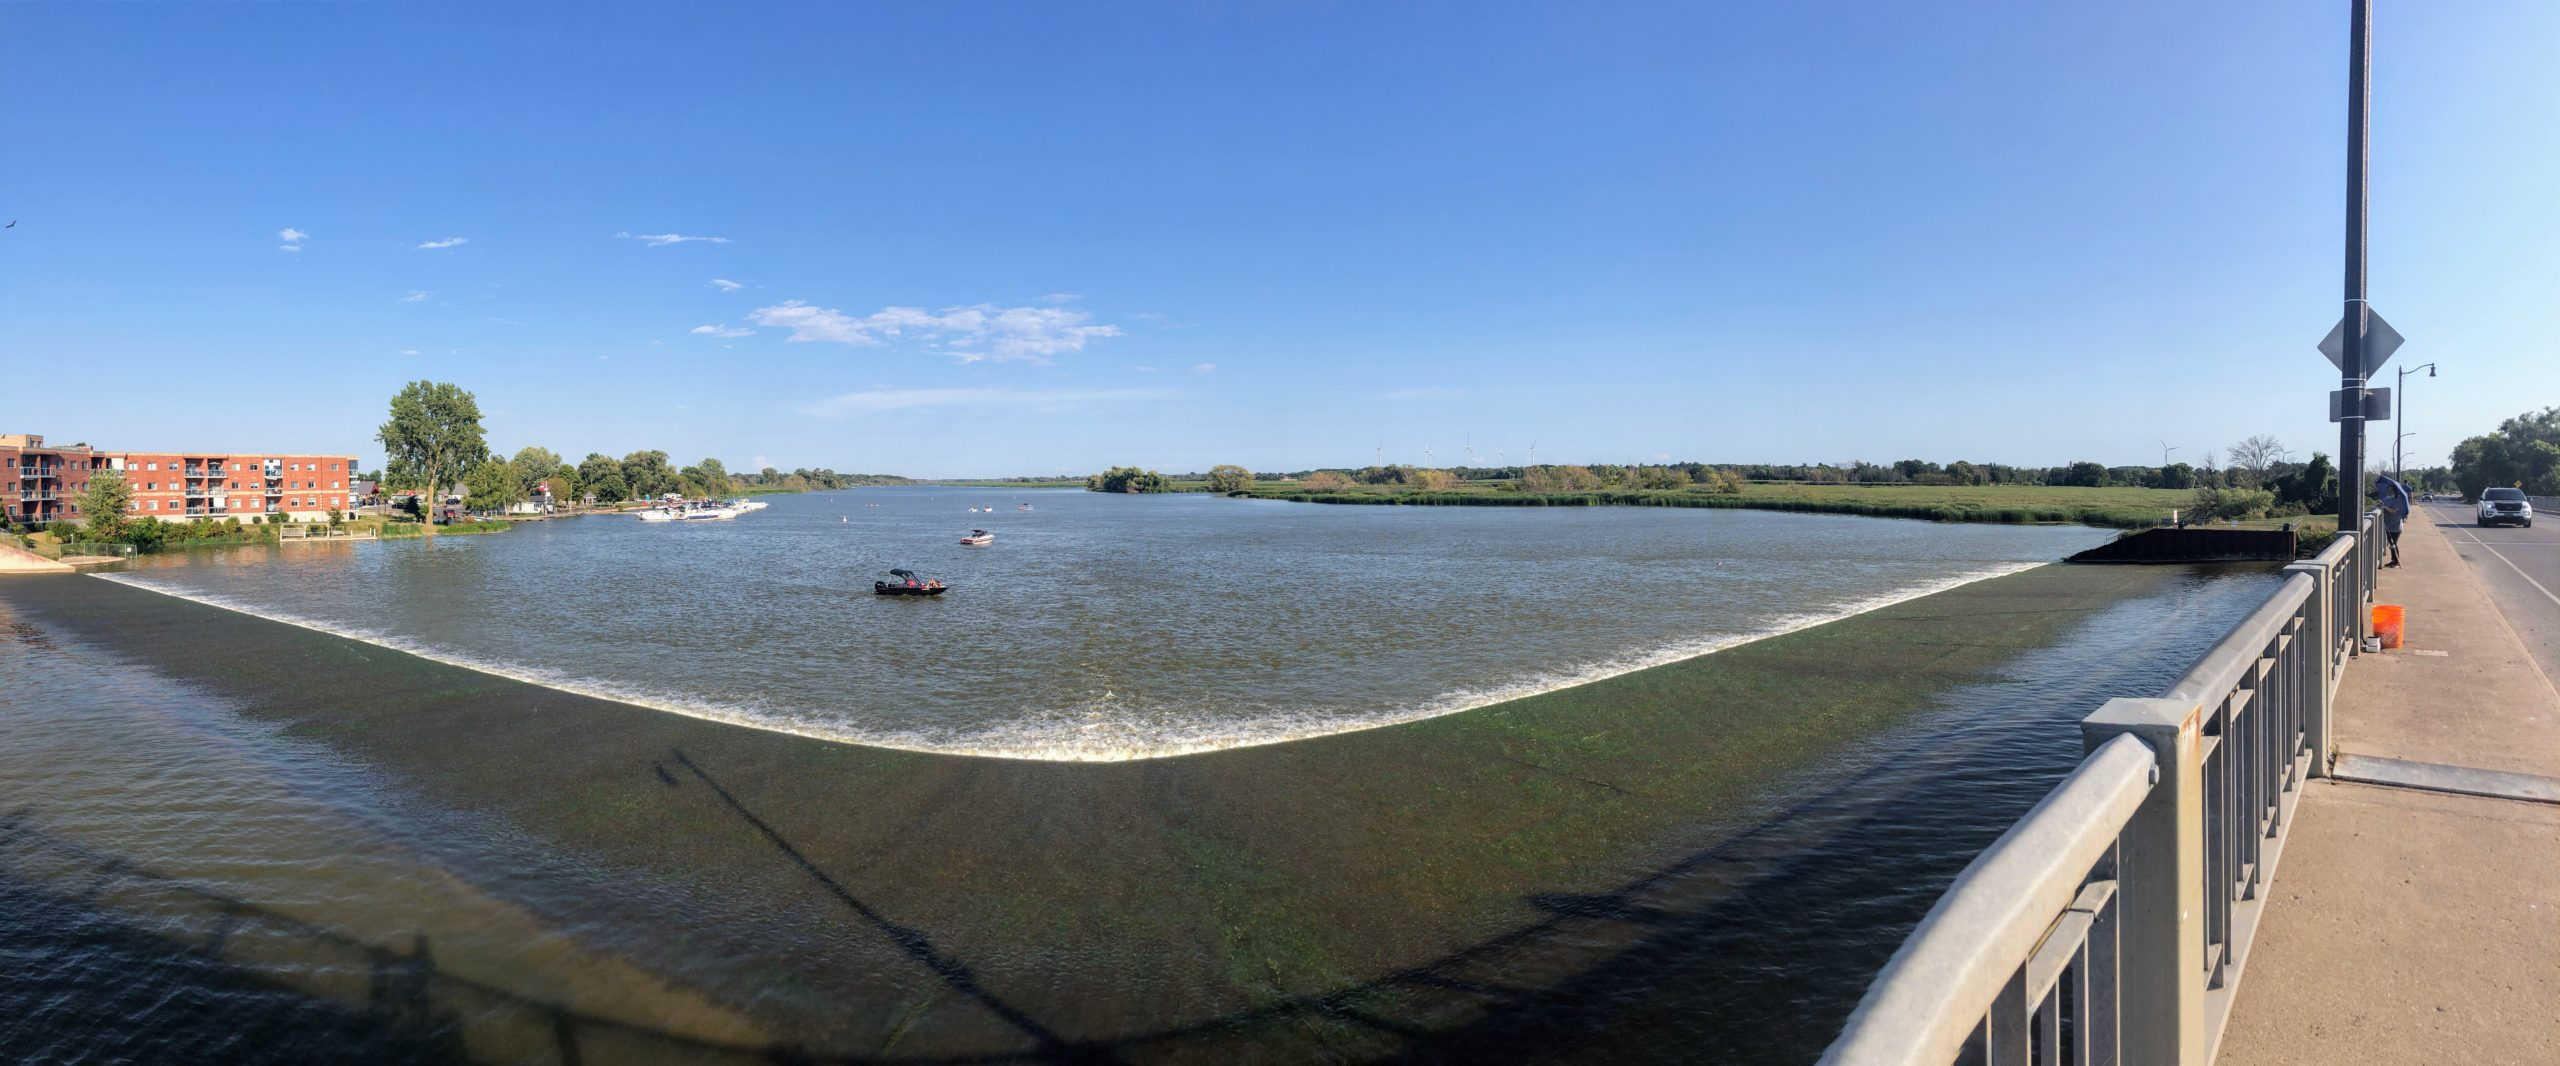 Panoramic view of The Grand River in Dunnville